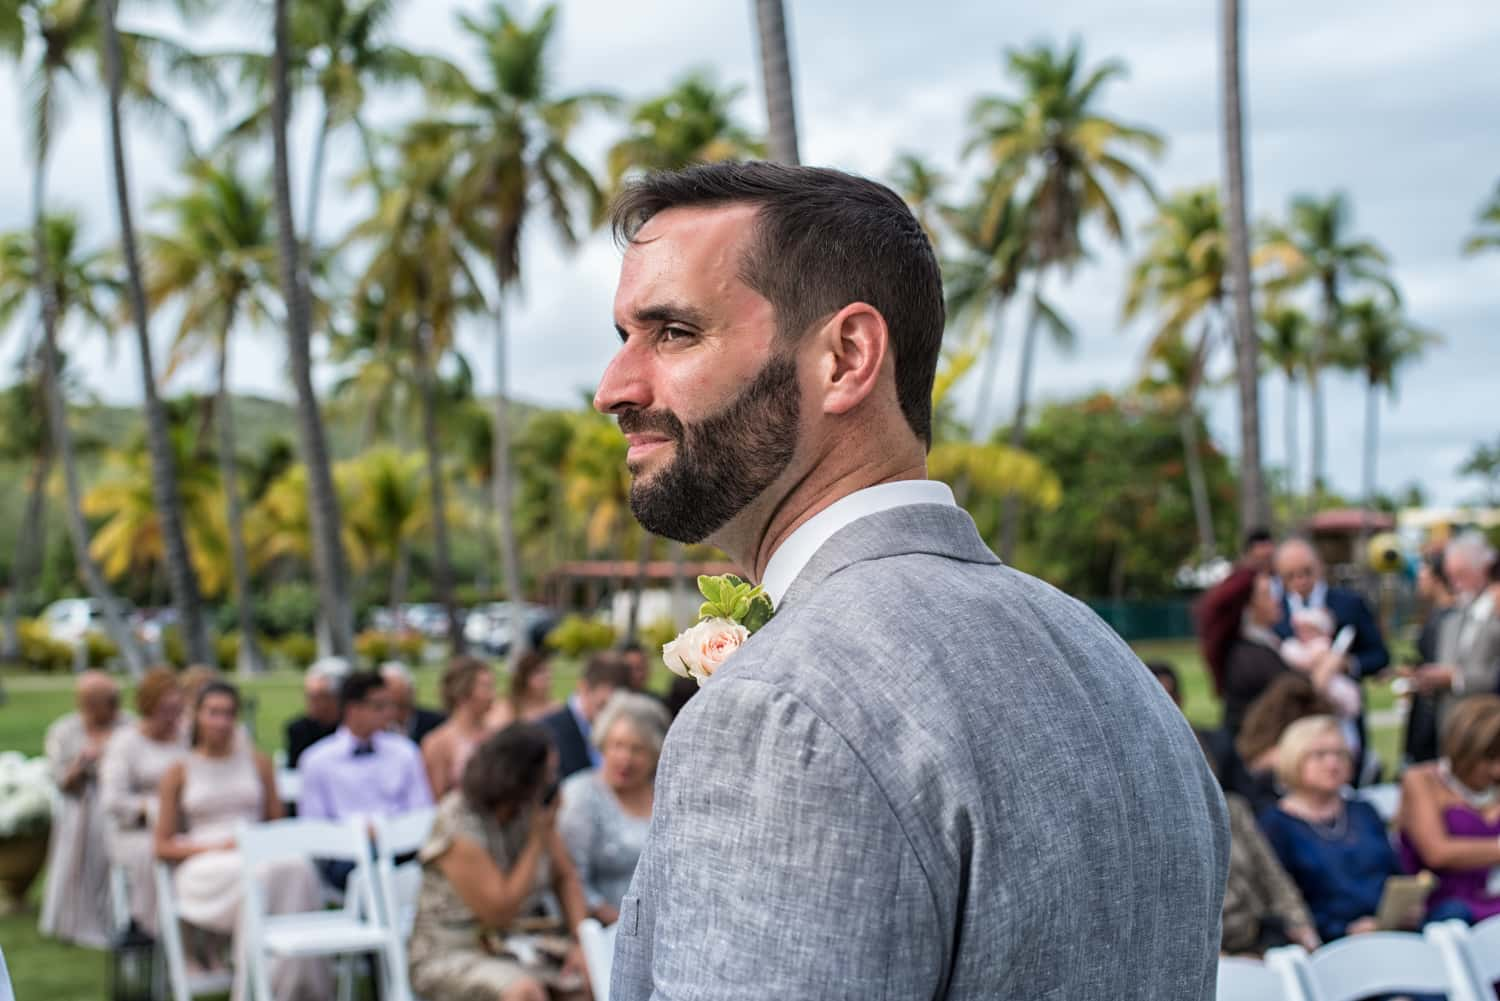 Groom waiting at the alter in front of his guests with palm trees in the distance.